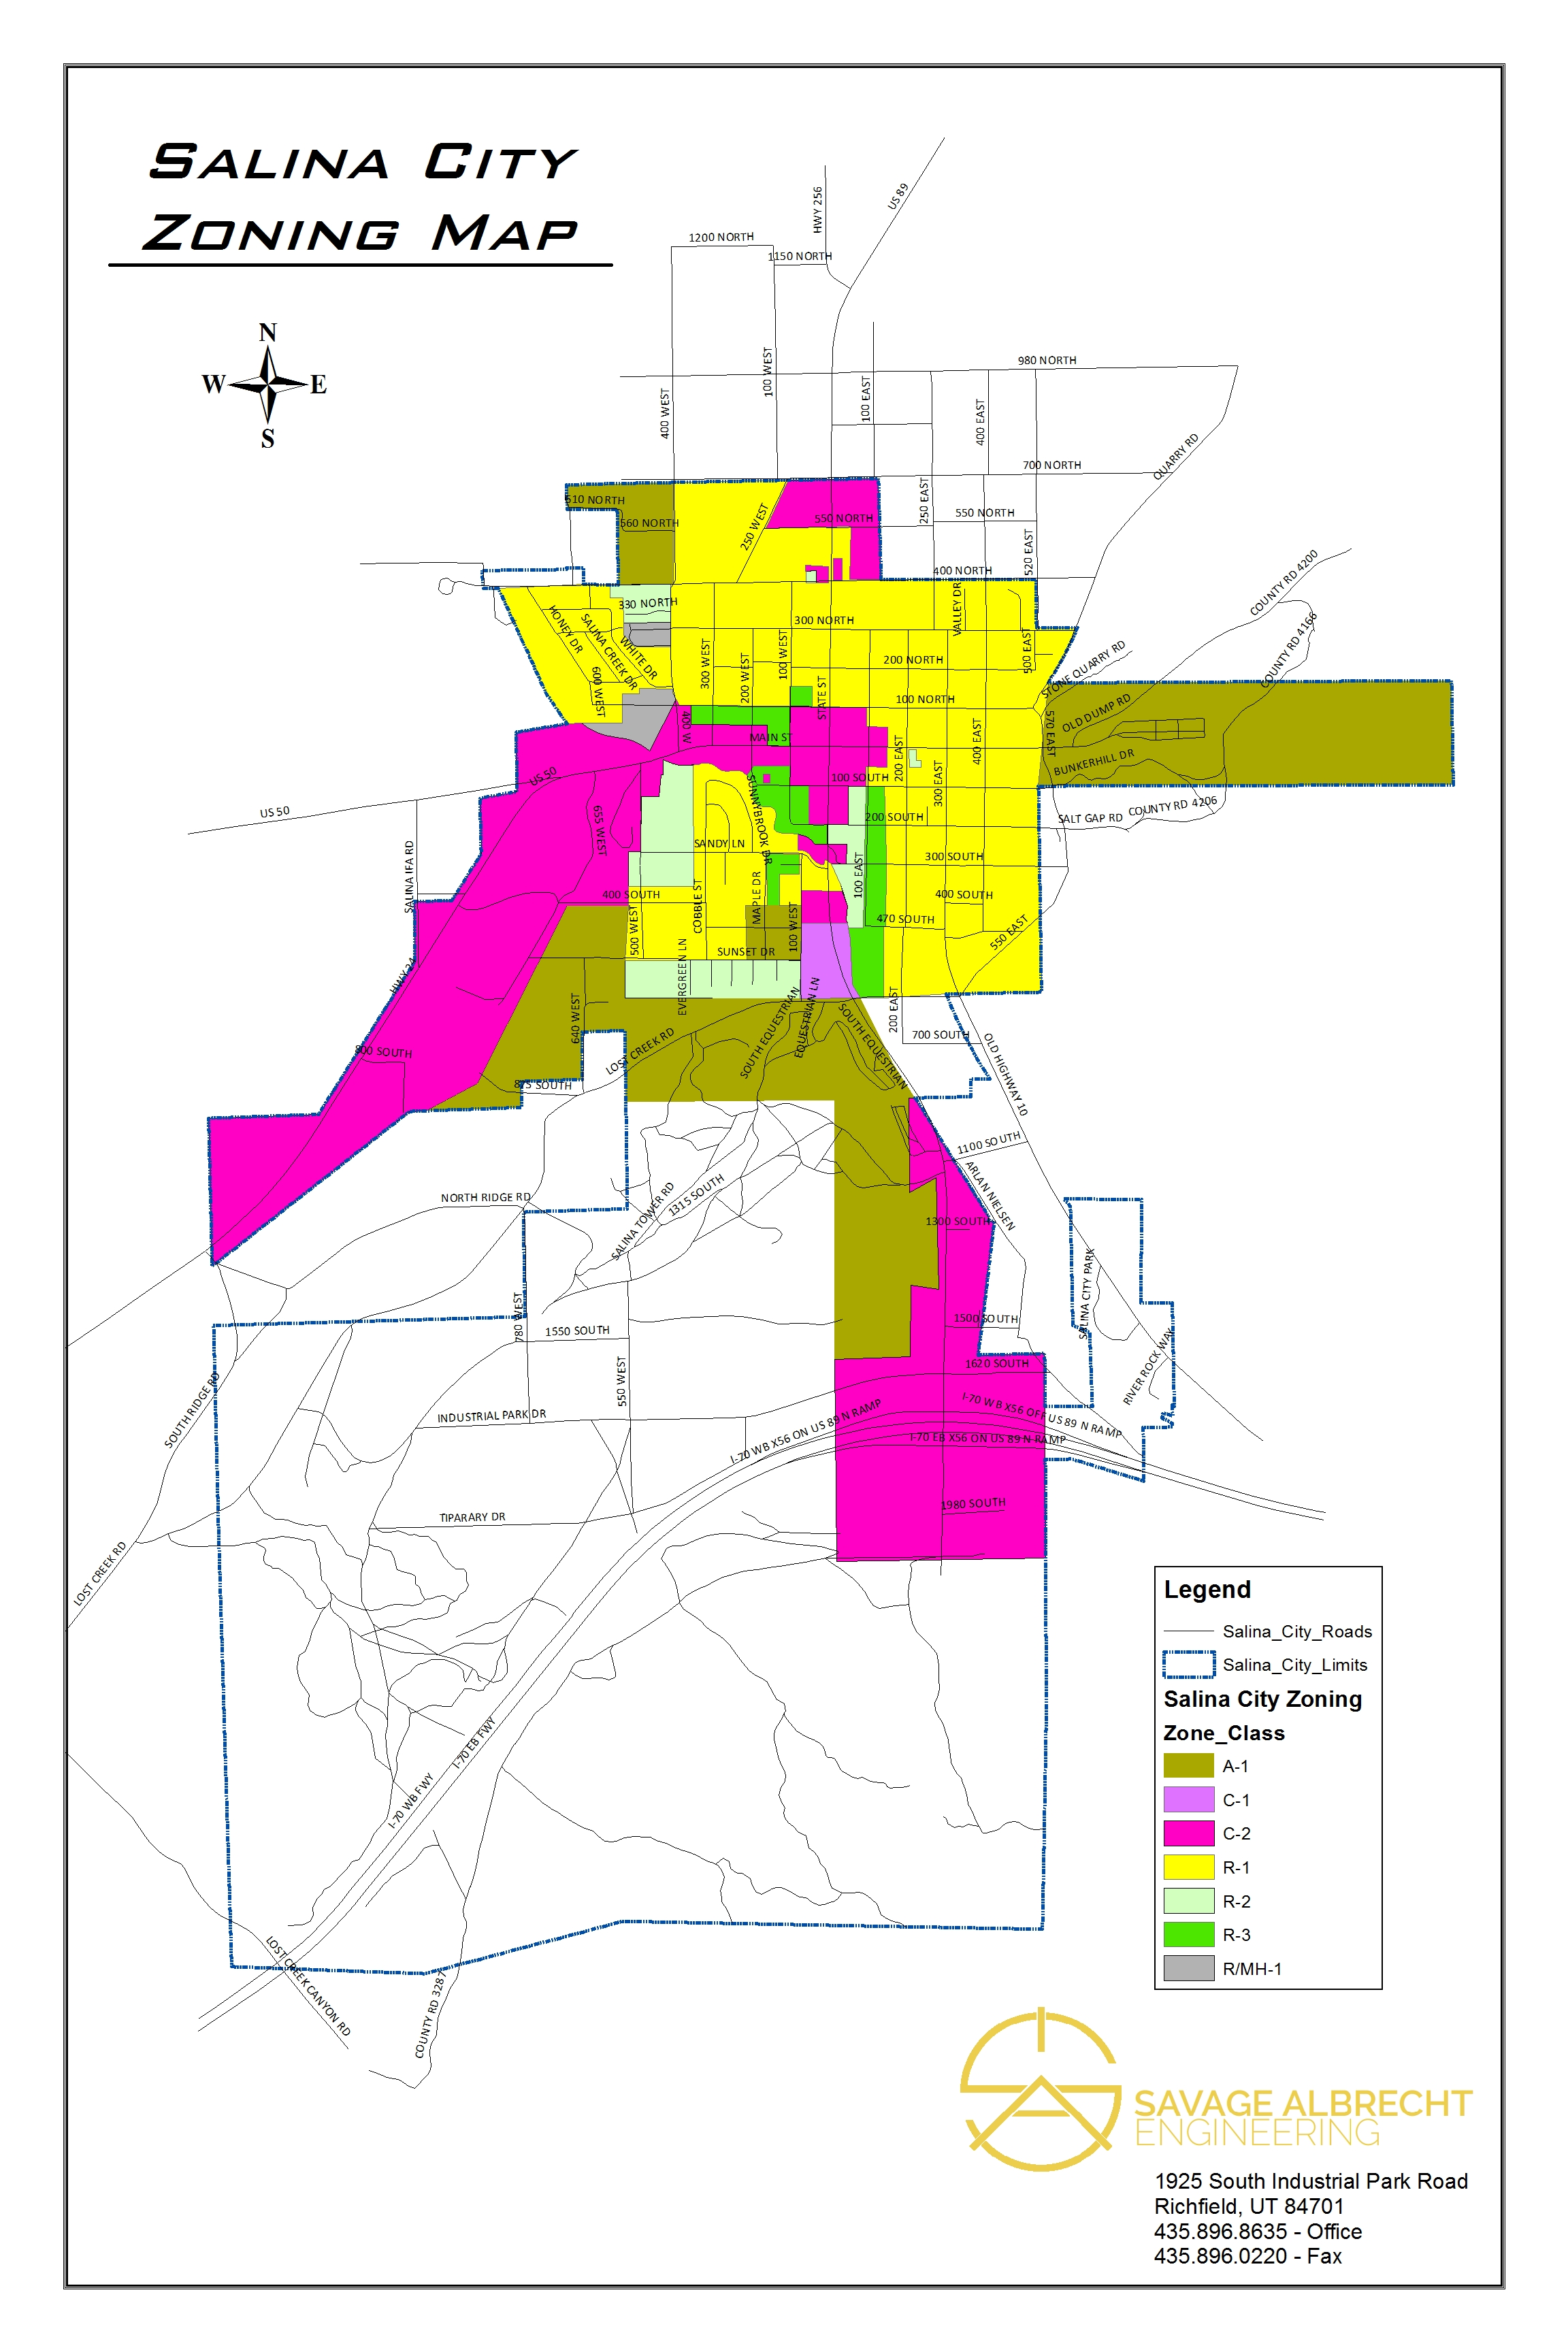 Salina City Zoning Map